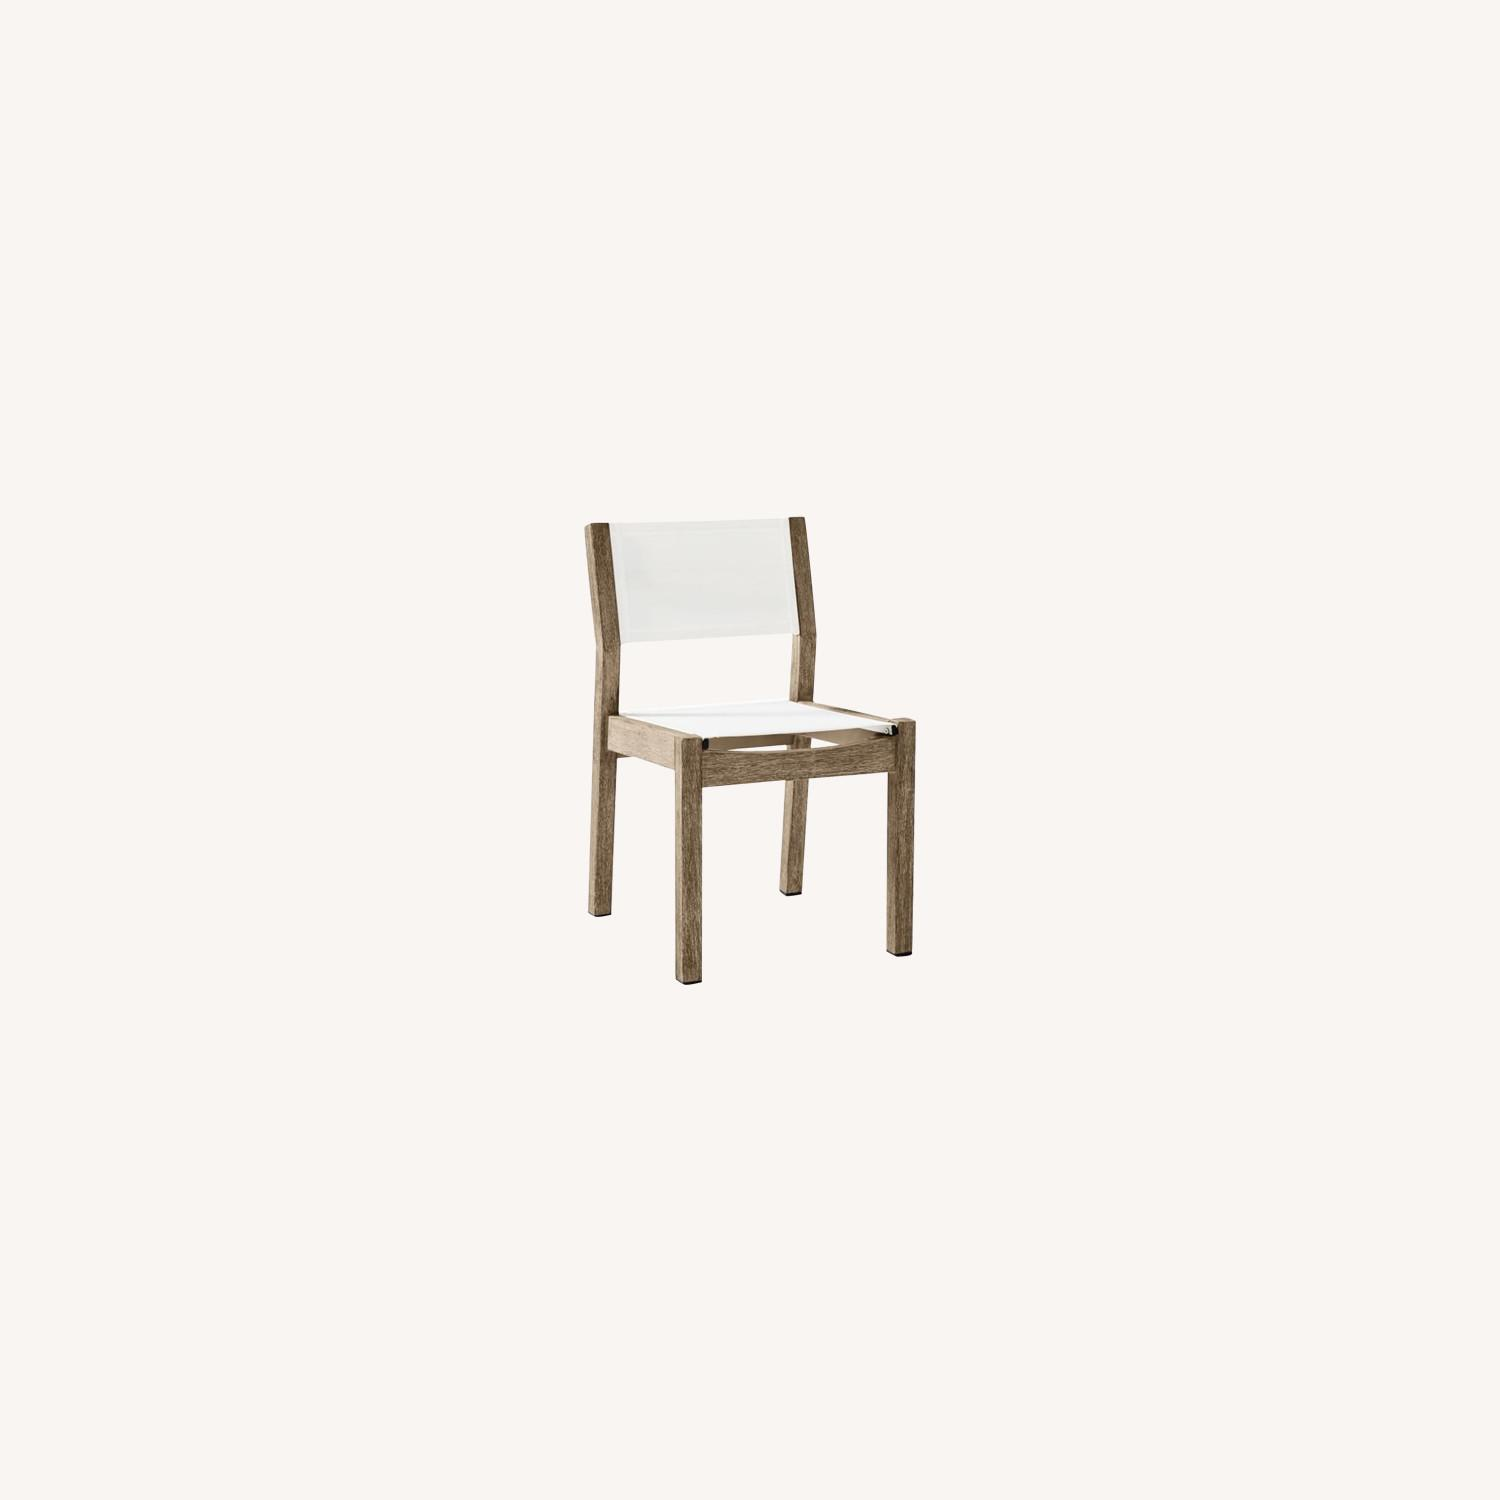 West Elm Portside Dining Chairs, Set of 2 - image-0